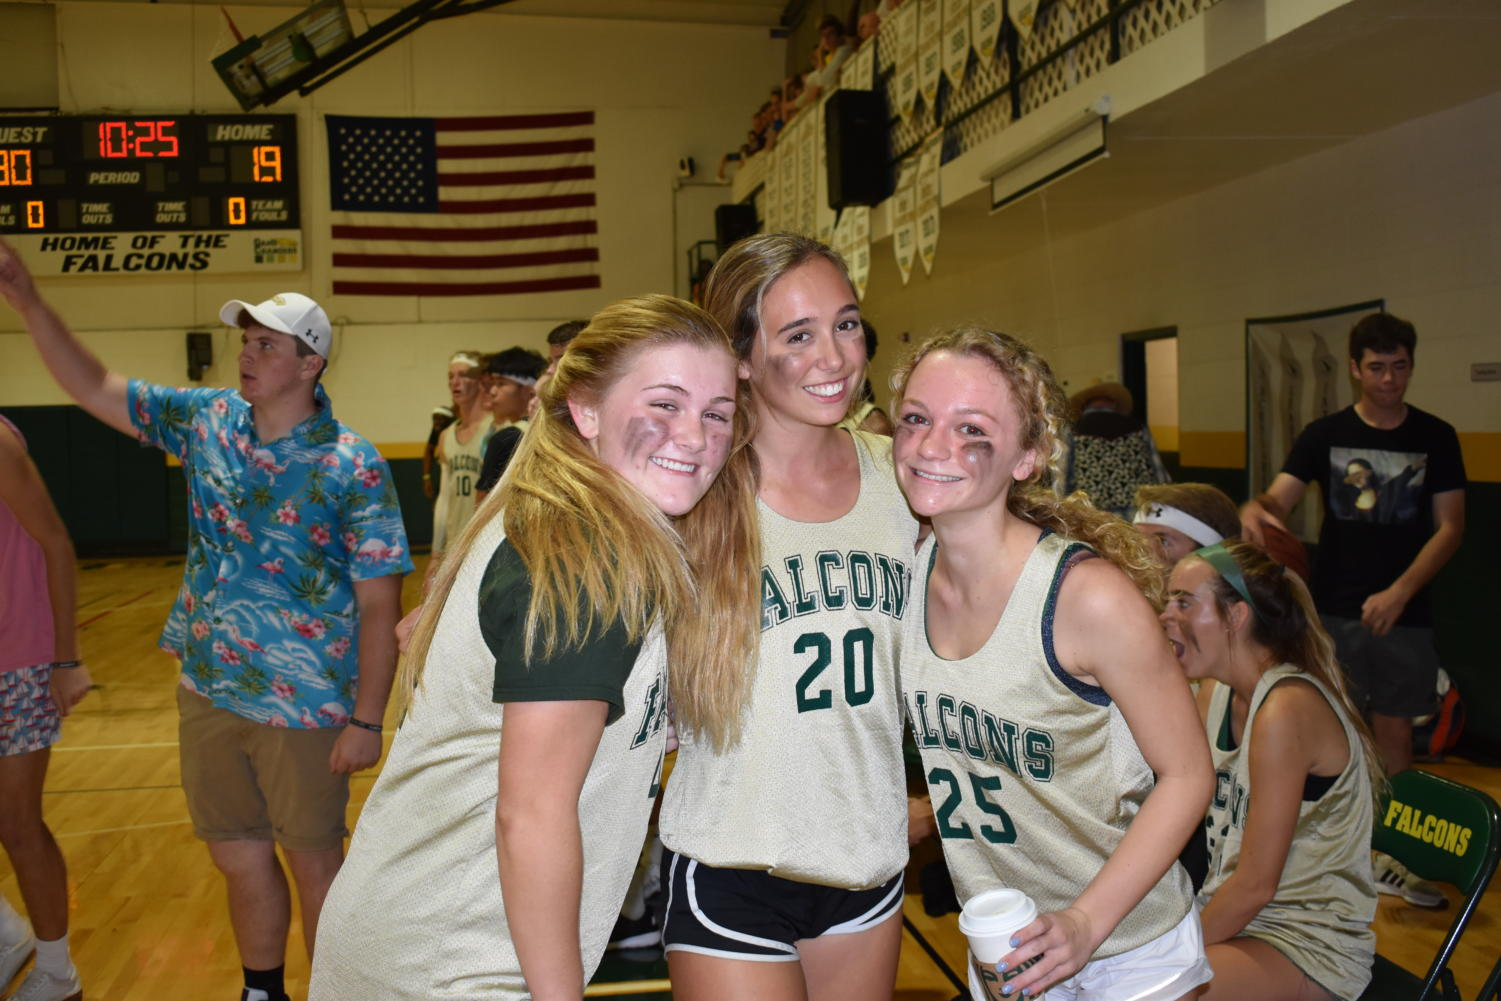 Seniors+Avery+Robinson%2C+Jackie+Schlossberg%2C+and+Kate+Folkens+smile+despite+being+down+against+faculty.